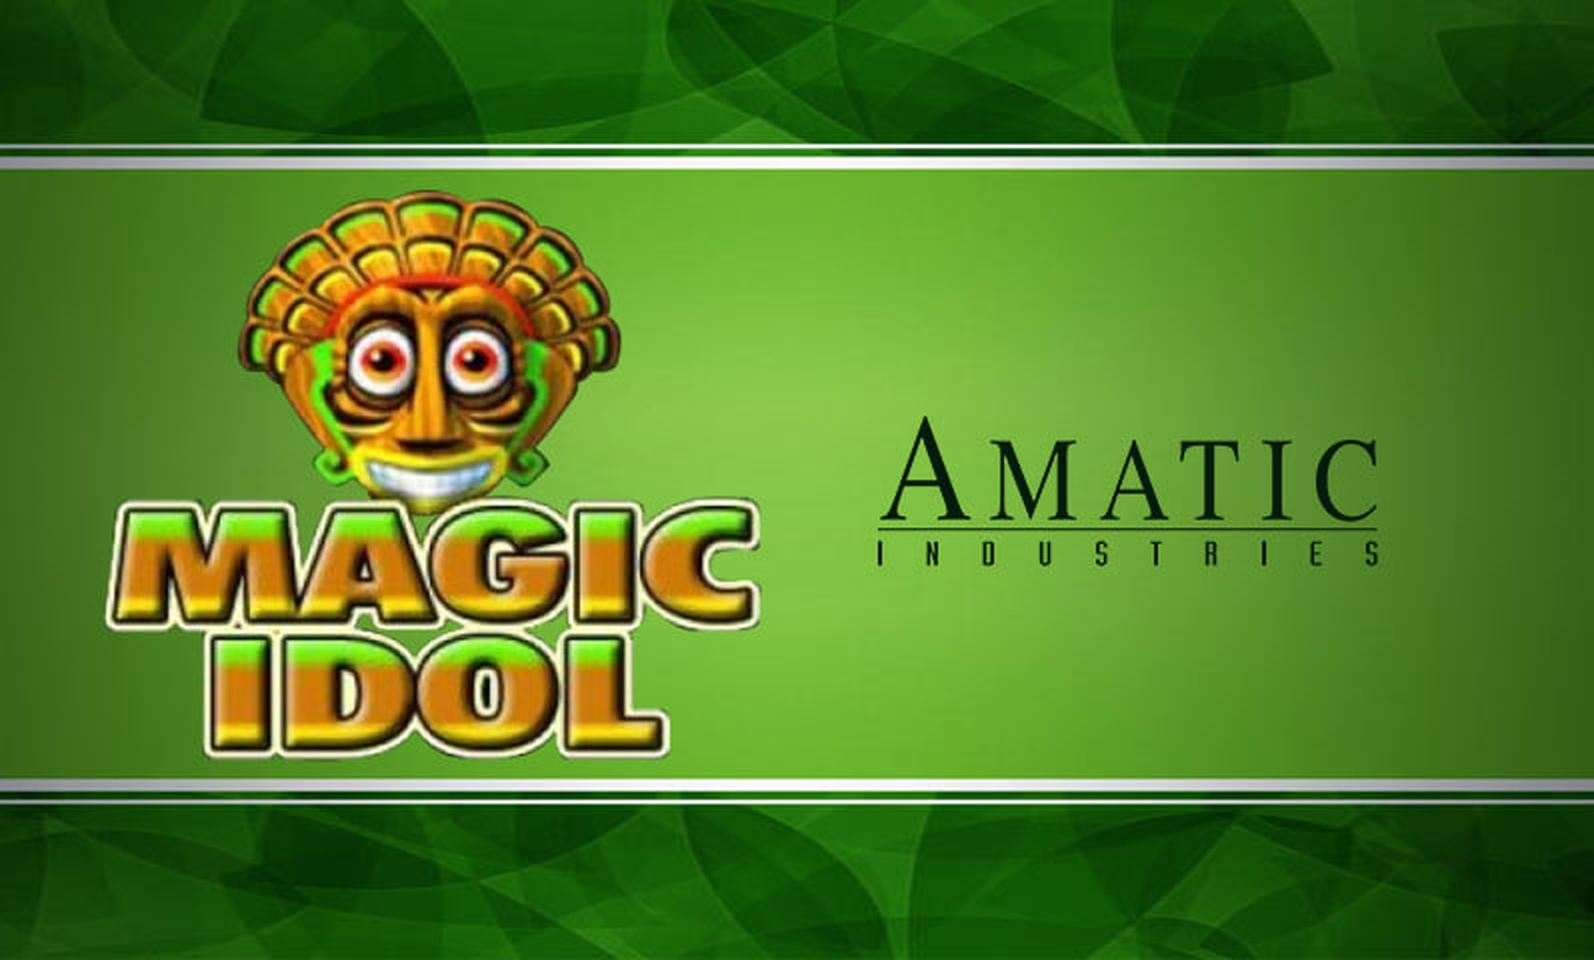 The Magic Idol Online Slot Demo Game by Amatic Industries